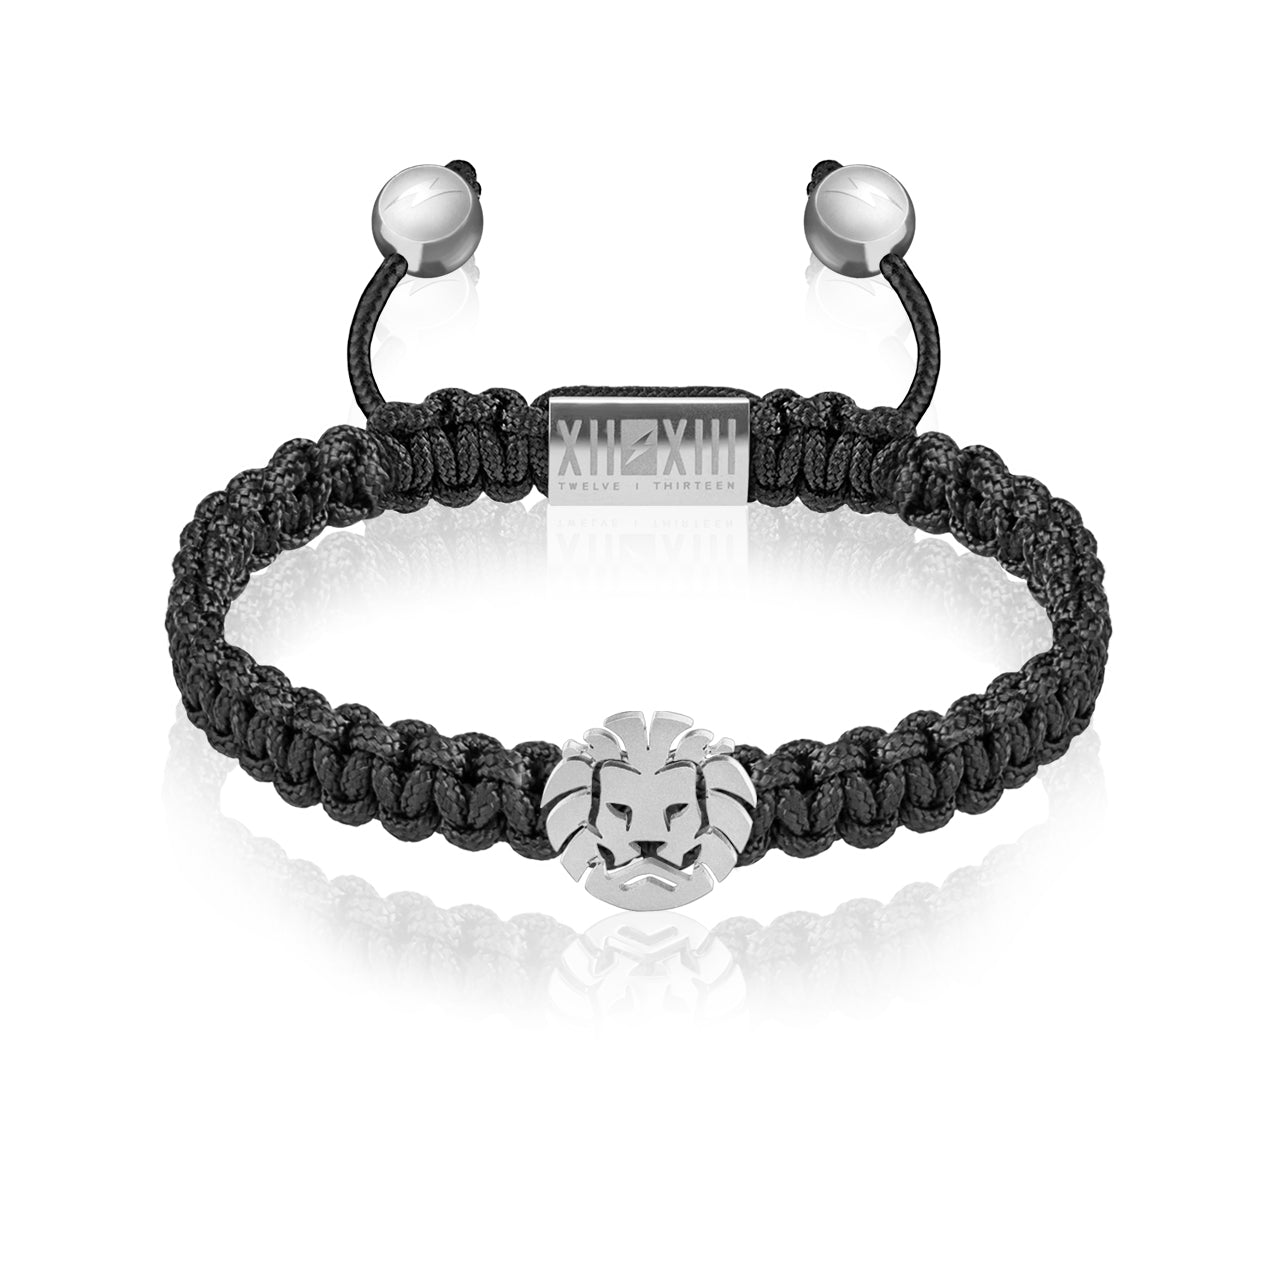 WATCHANISH by Twelve Thirteen Jewelry macramé braided bracelet - Black/Matte Silver